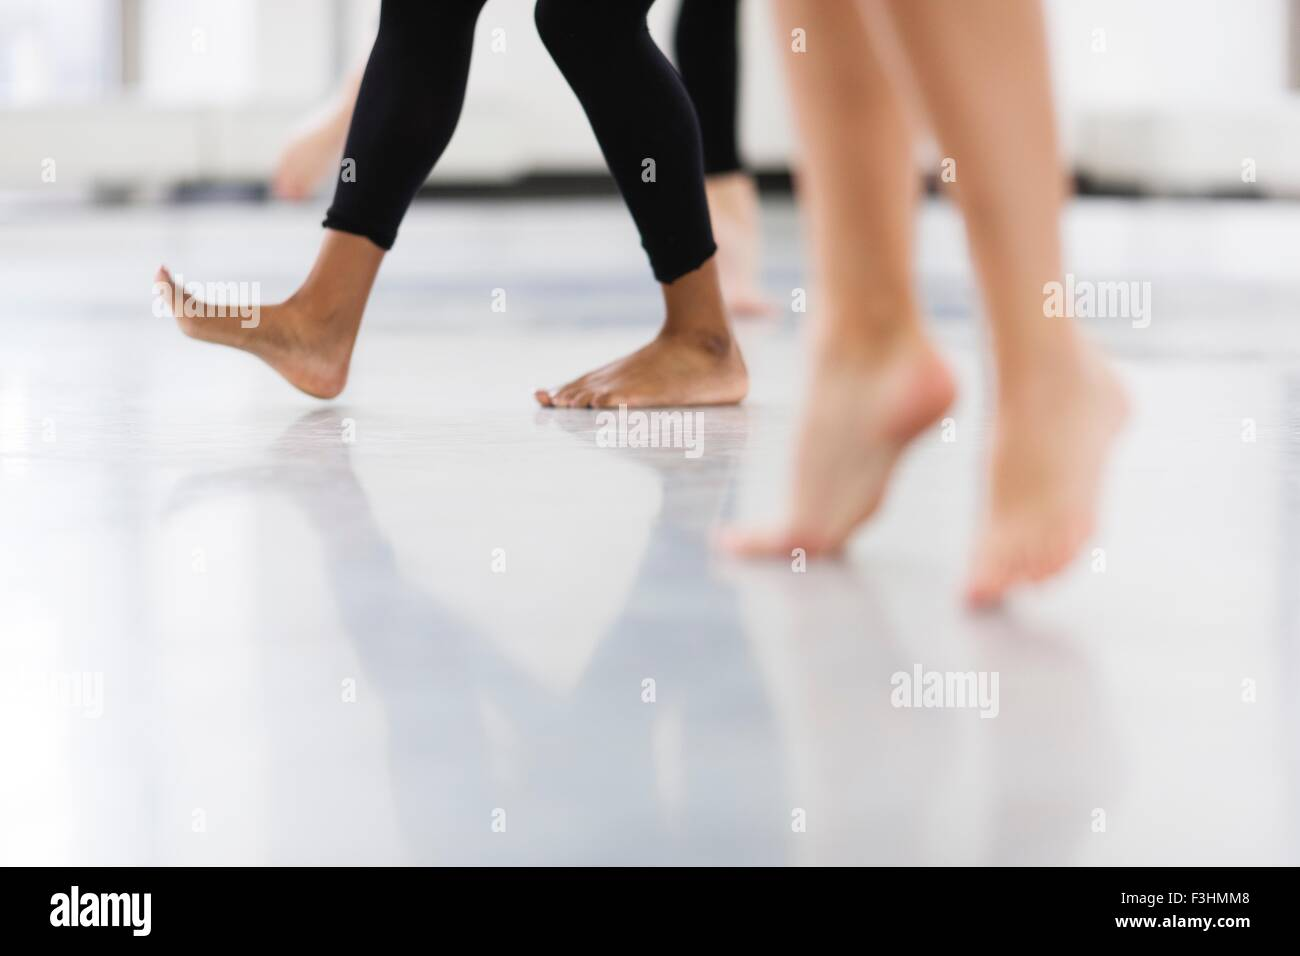 Women with bare feet Stock Photo, Royalty Free Image: 12552369 - Alamy